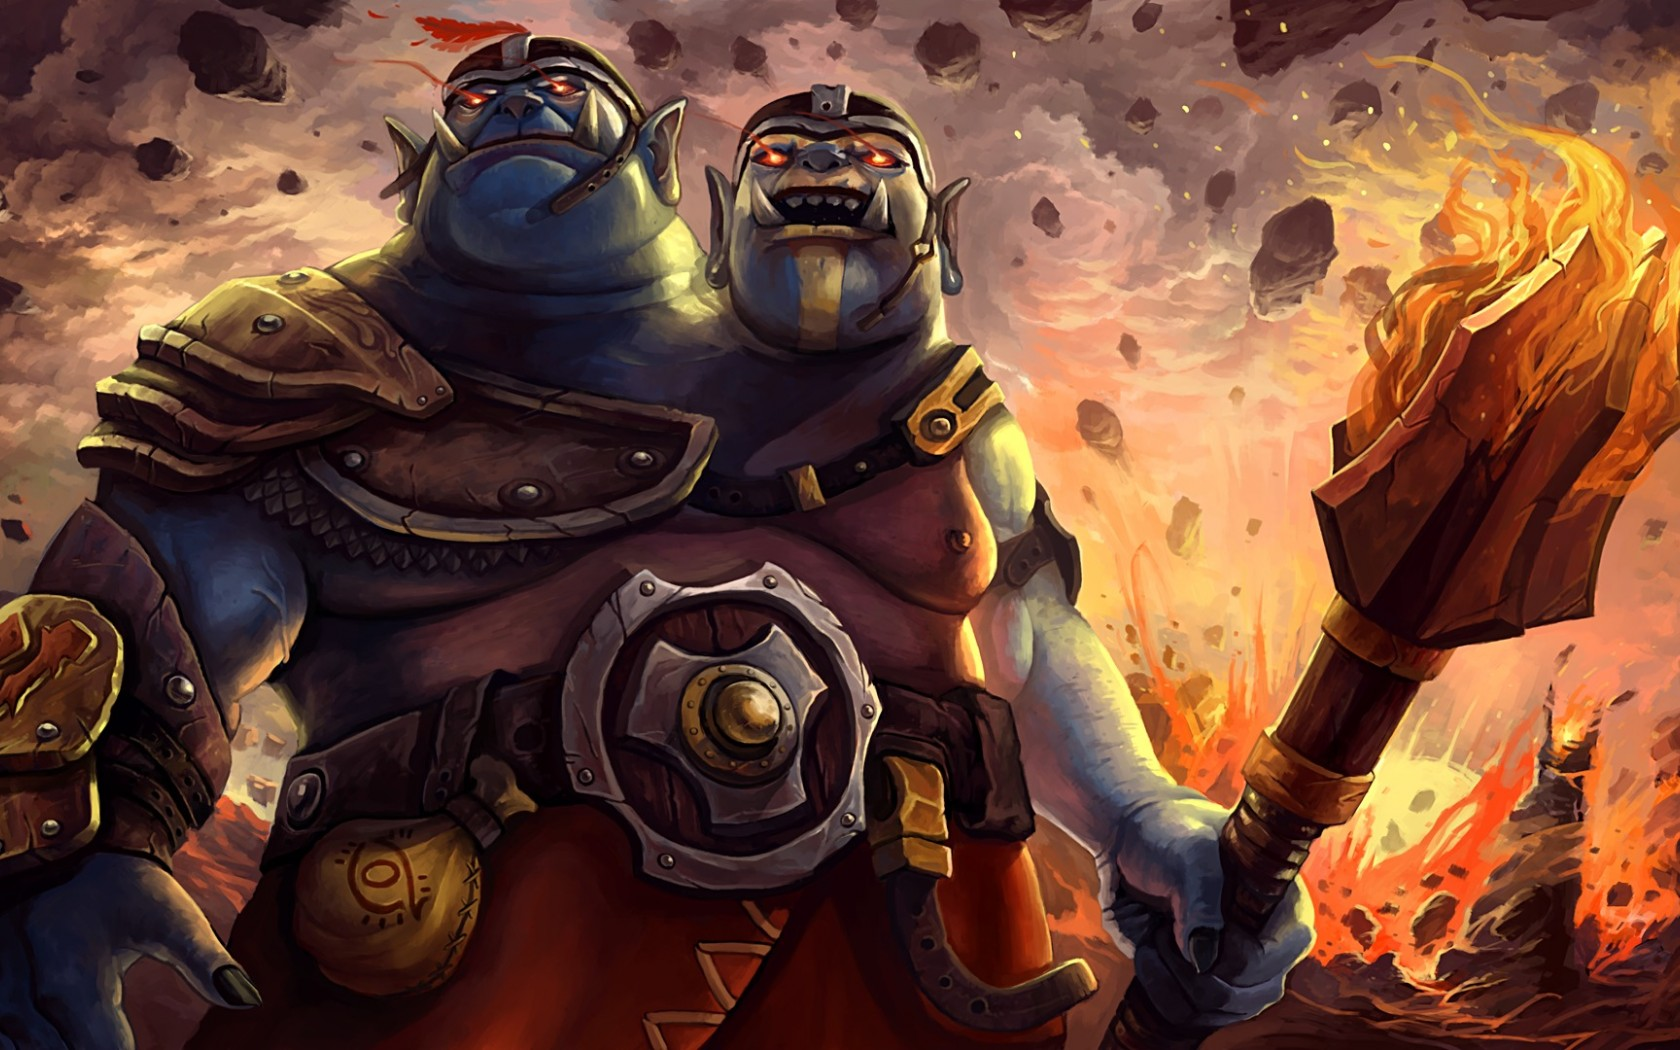 Ogre Magi high resolution wallpapers for desktop